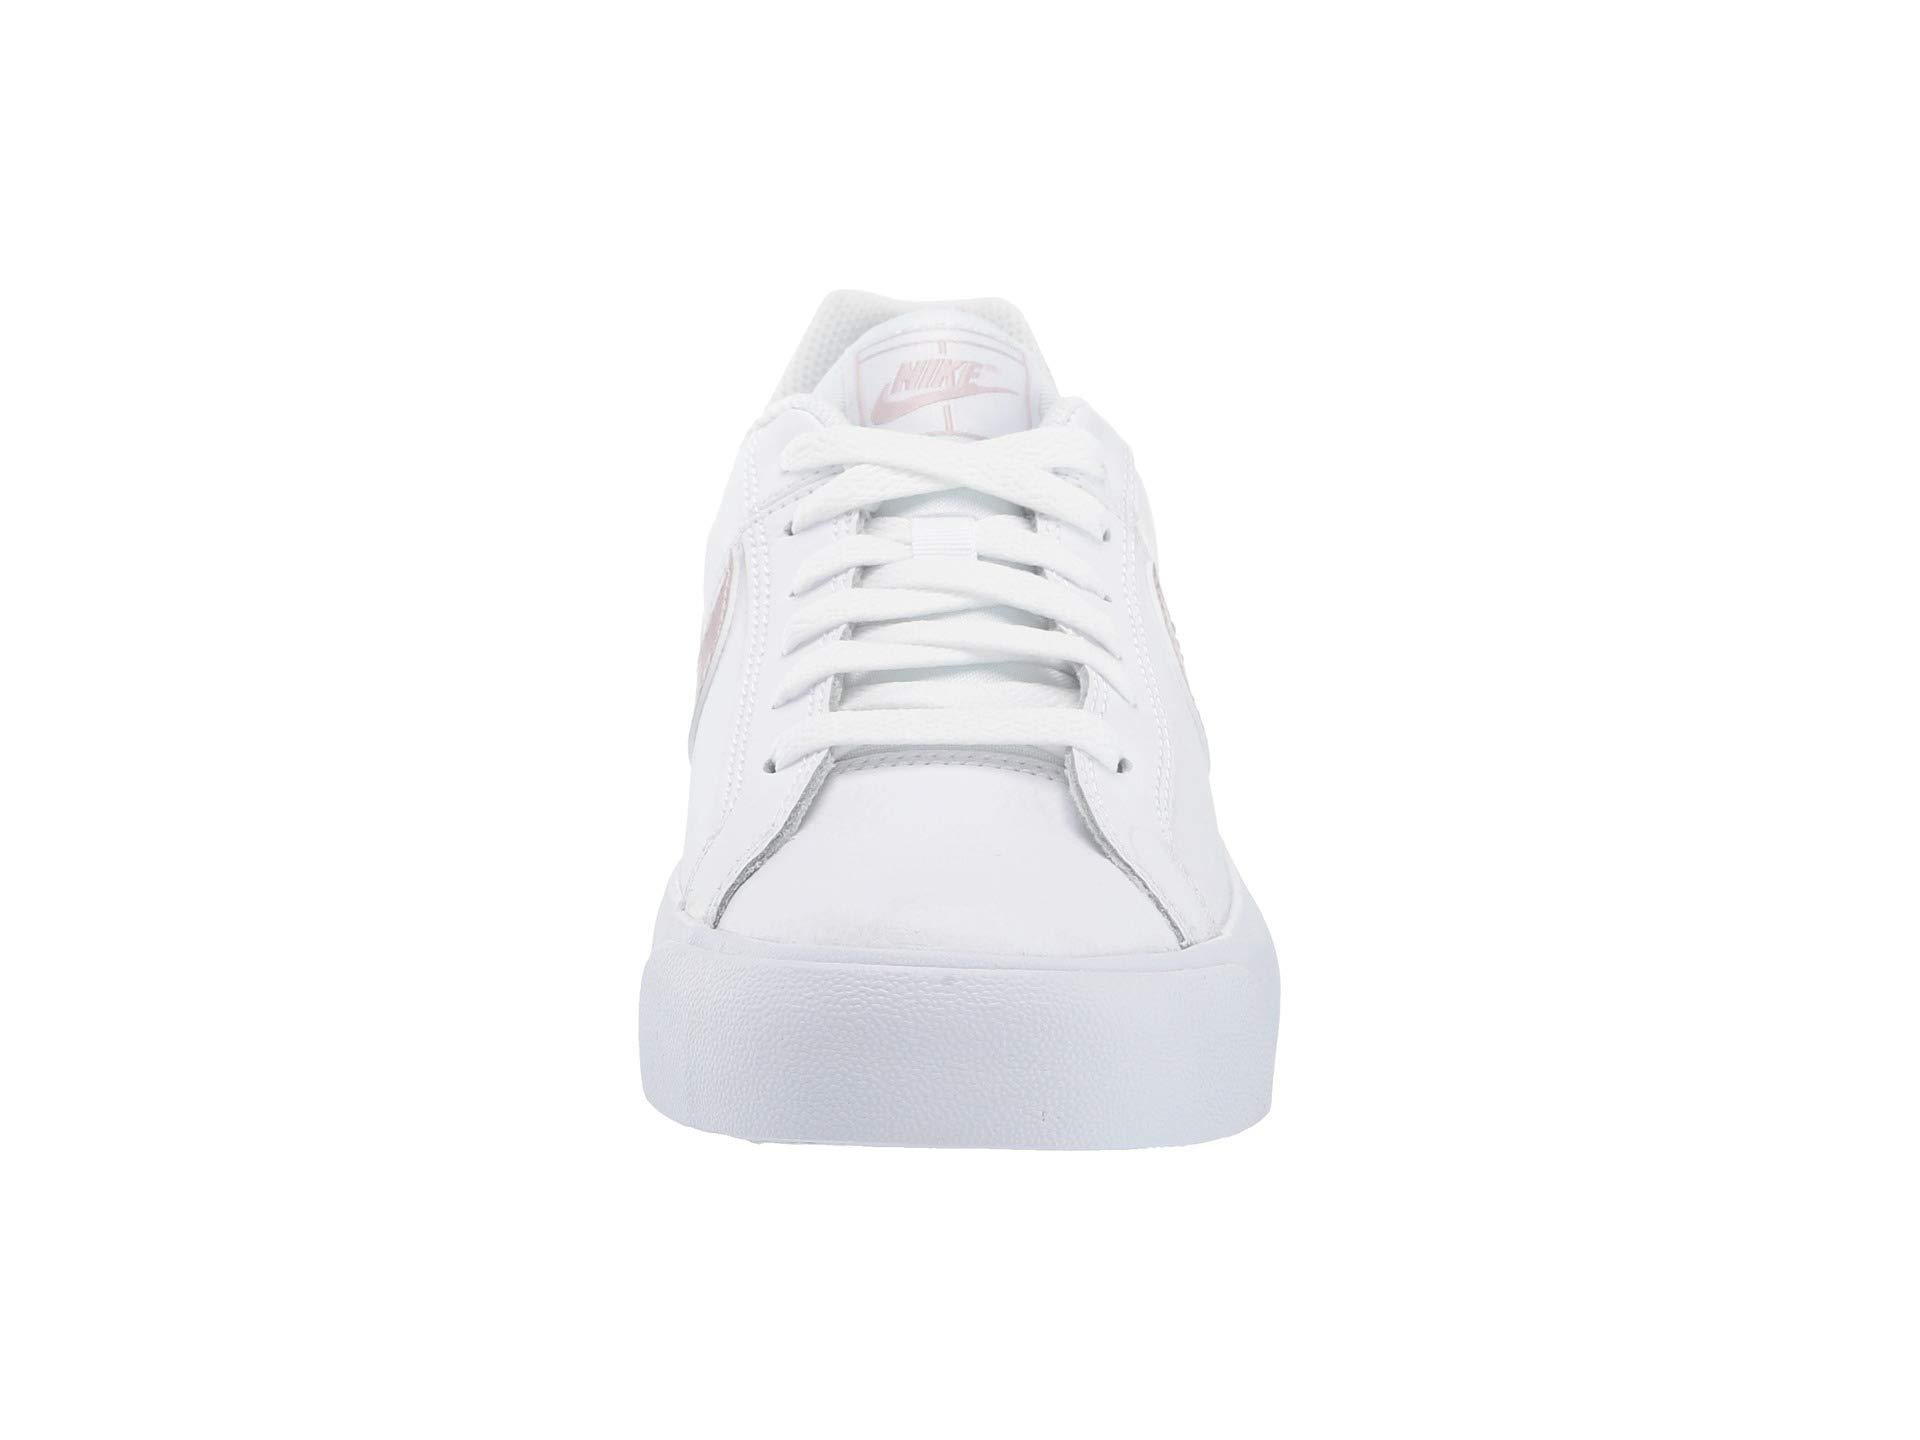 Lyst - Nike Court Royale Ac (white particle Rose) Women s Shoes in White c7d01694708b